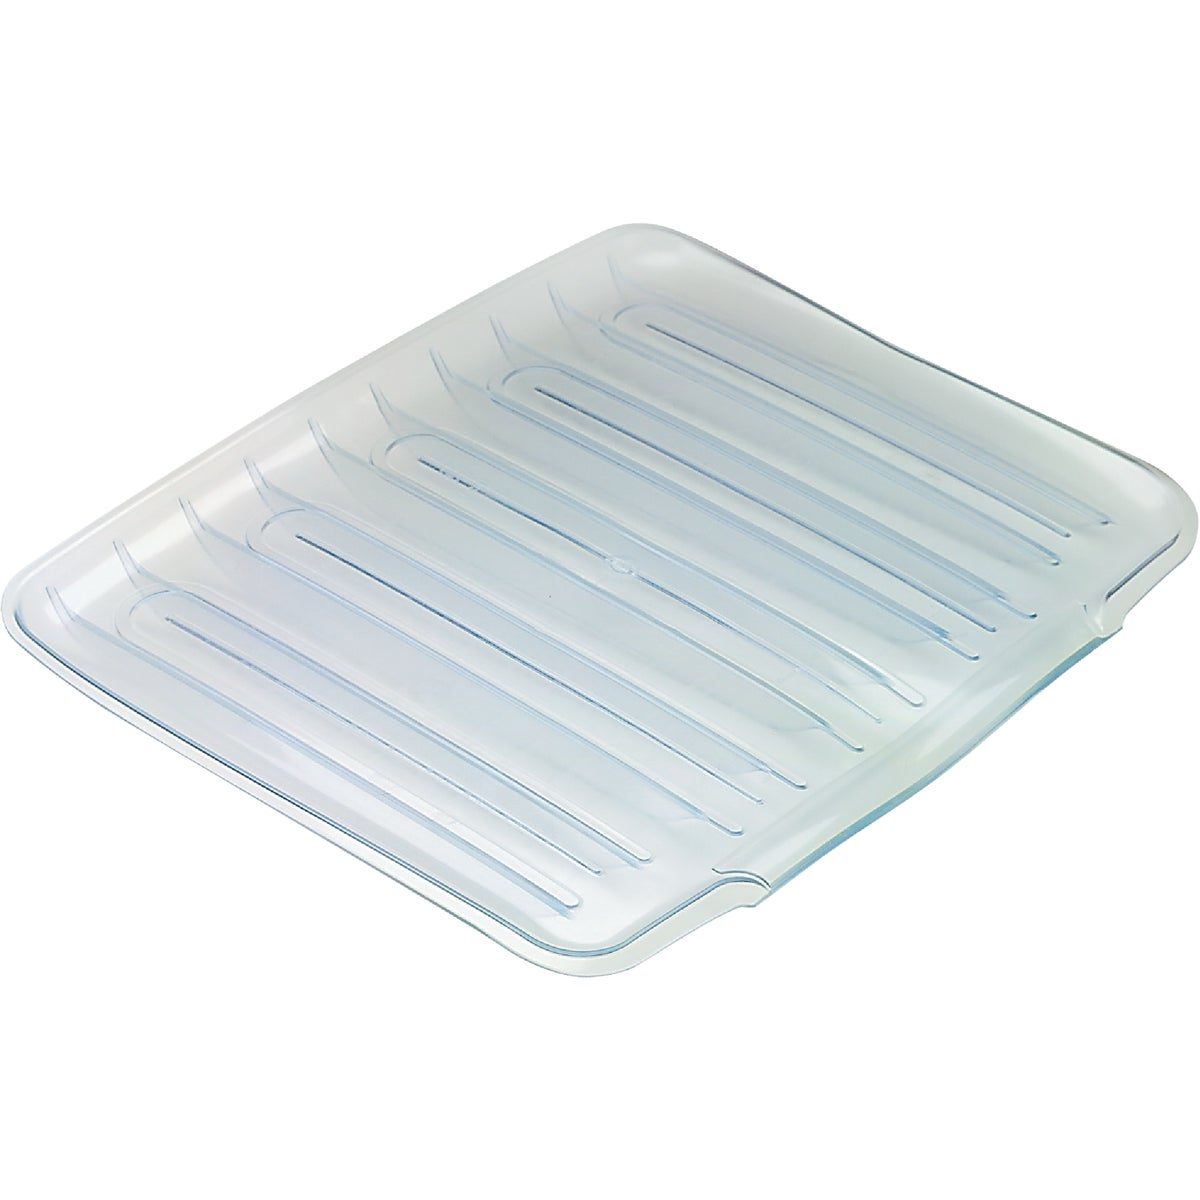 Rubbermaid SMALL CLEAR DRAINER TRAY 1180MACLR